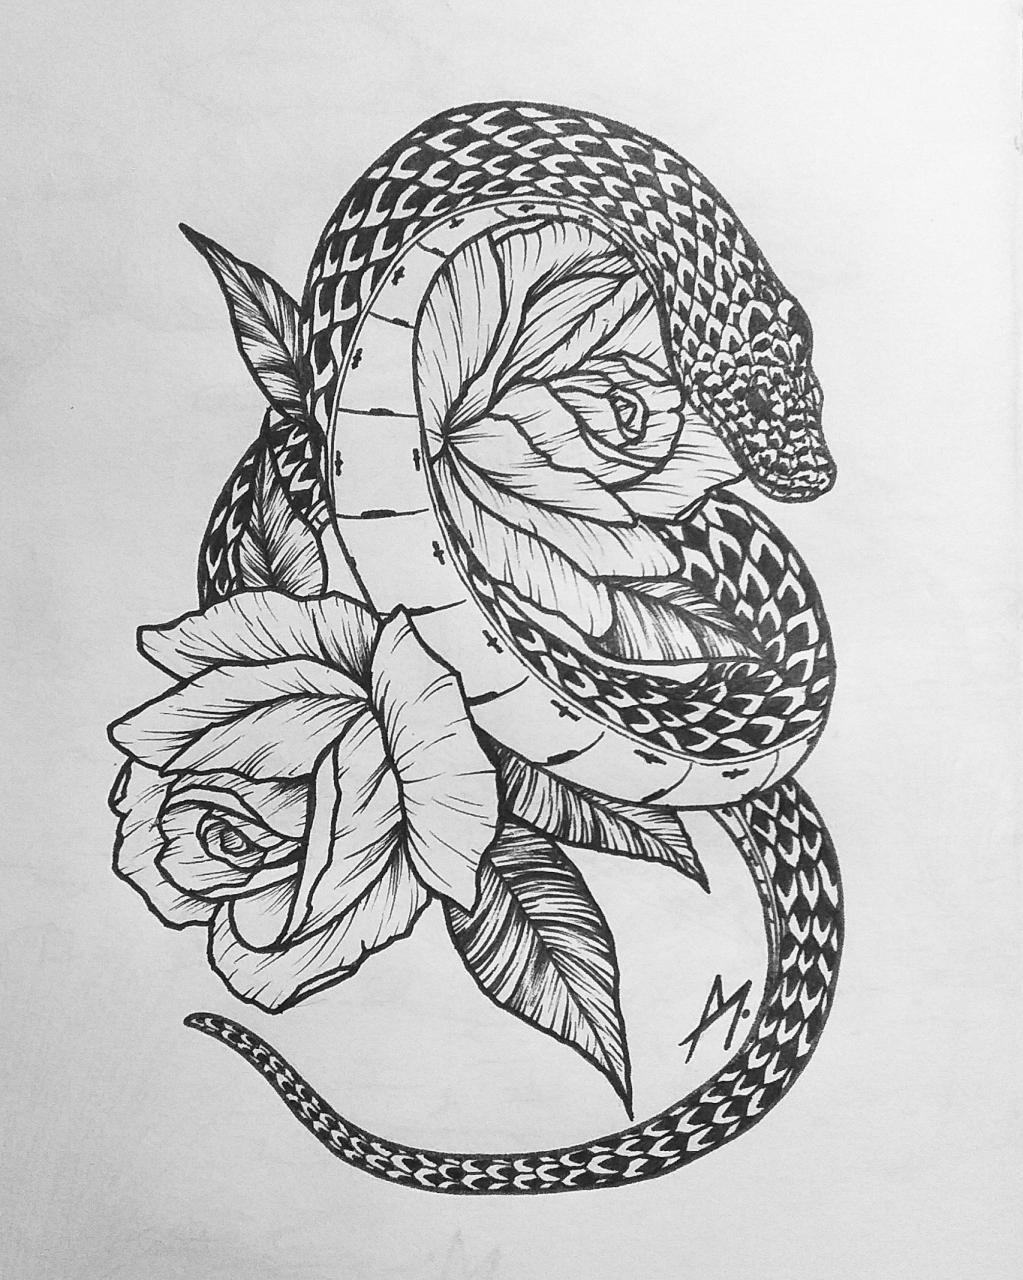 One of my latest artworks for maybe a future tattoo. Dangerous Nature, Me, nanquim, 2020.